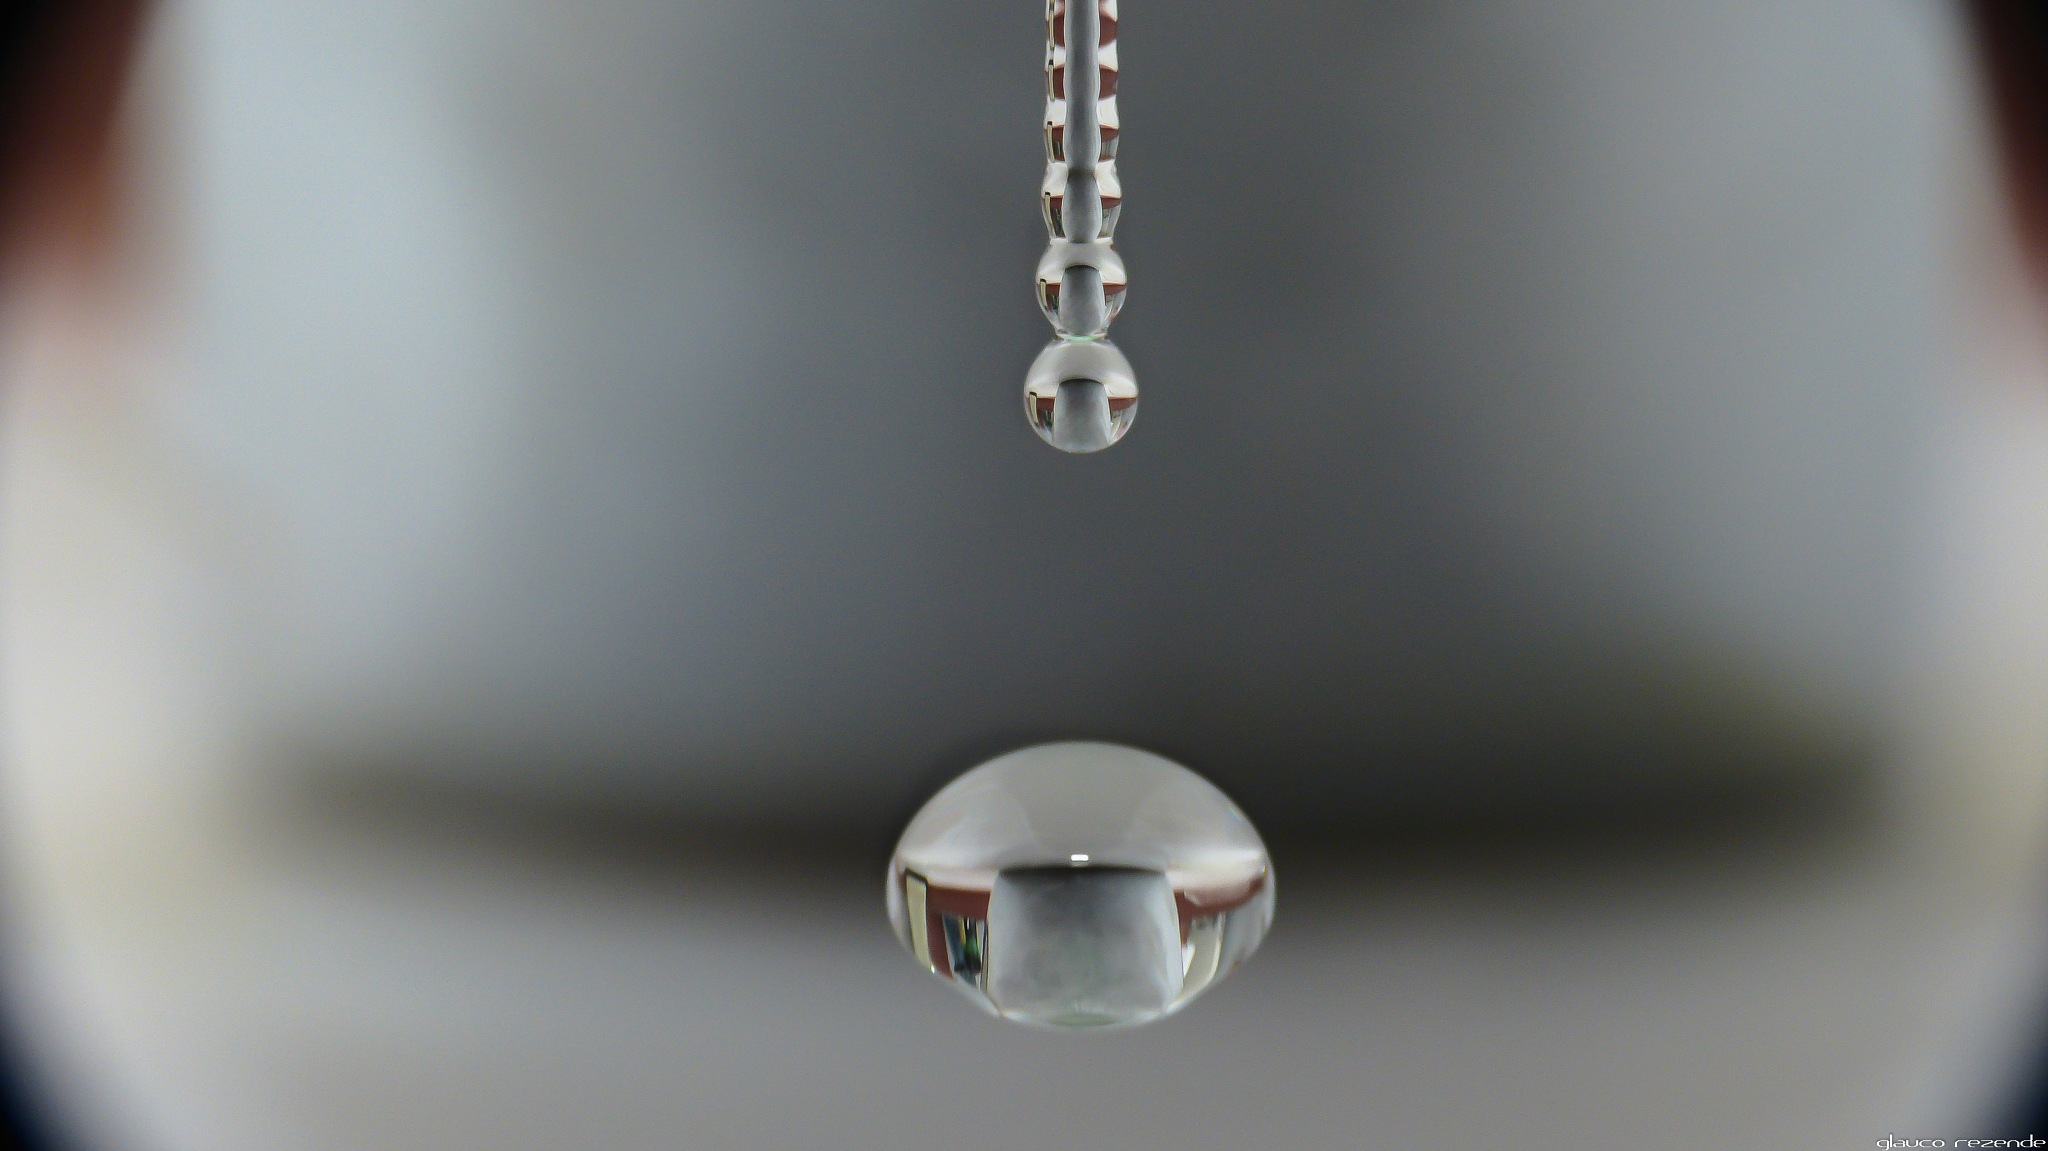 The water drops by Glauco Rezende